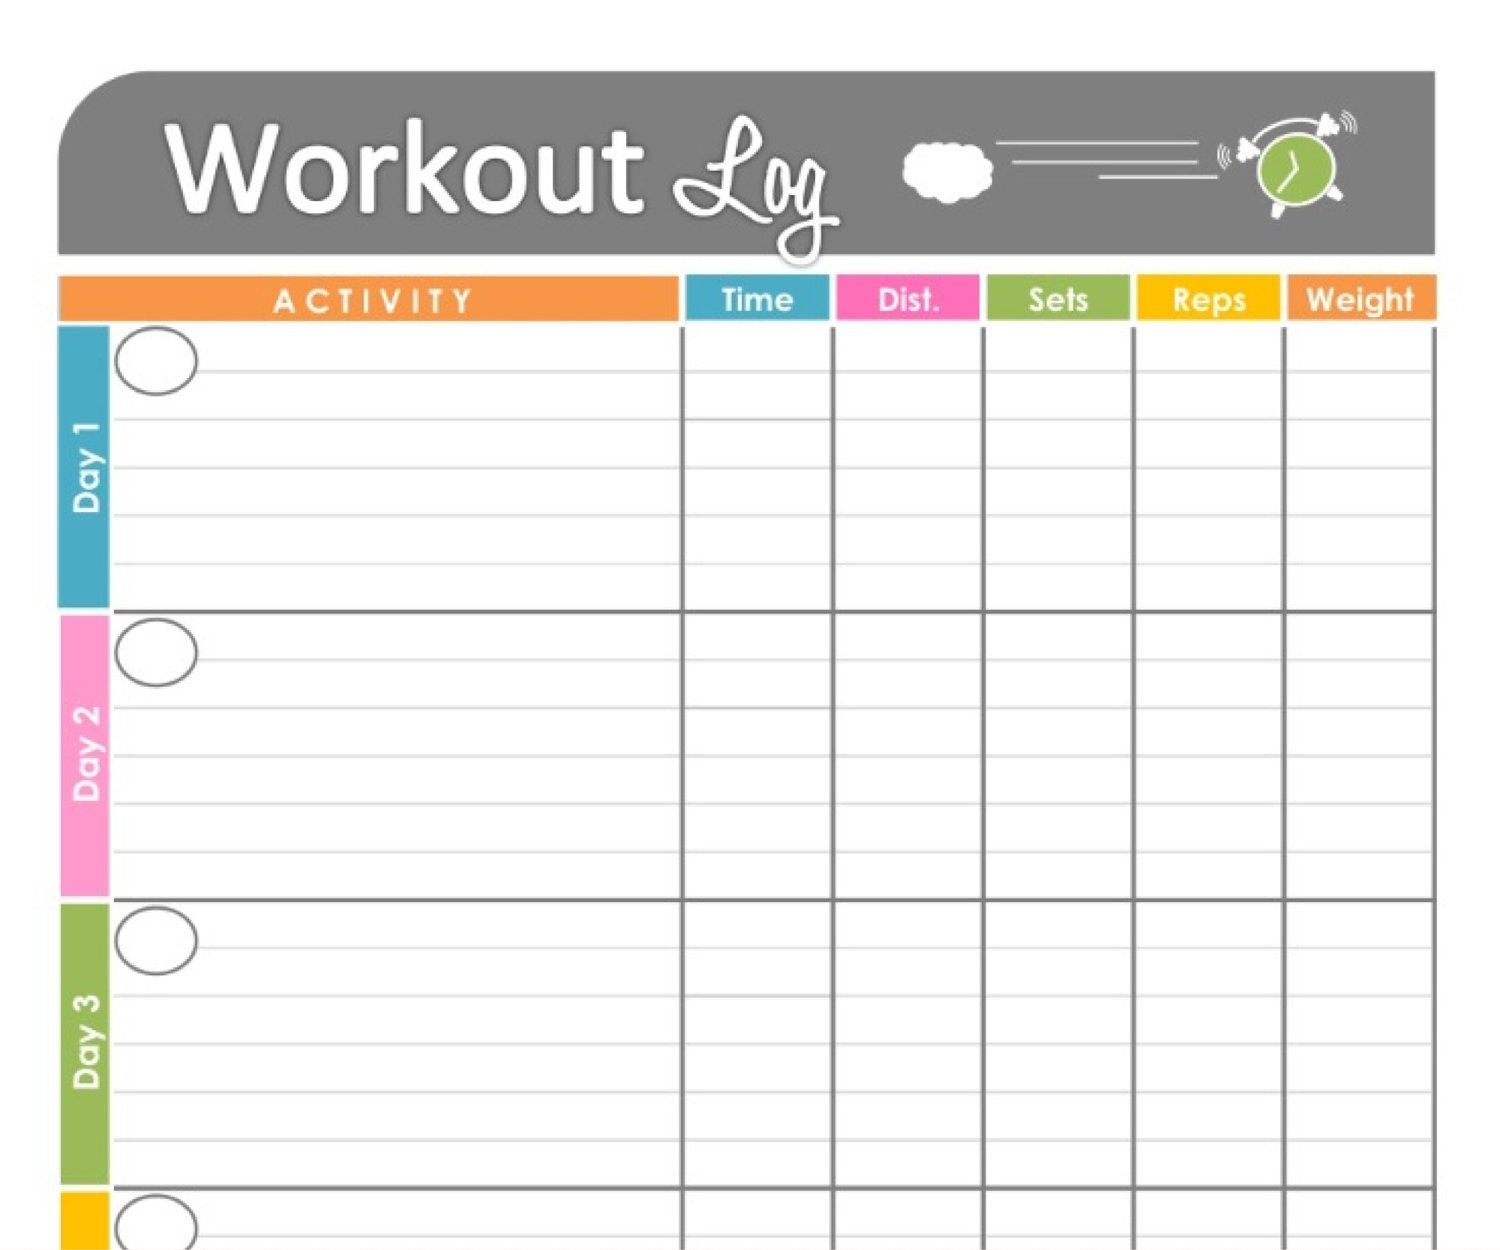 Workout Log Exercise Log Printable Forfreshandorganized, $3.50 - Free Printable Walking Log